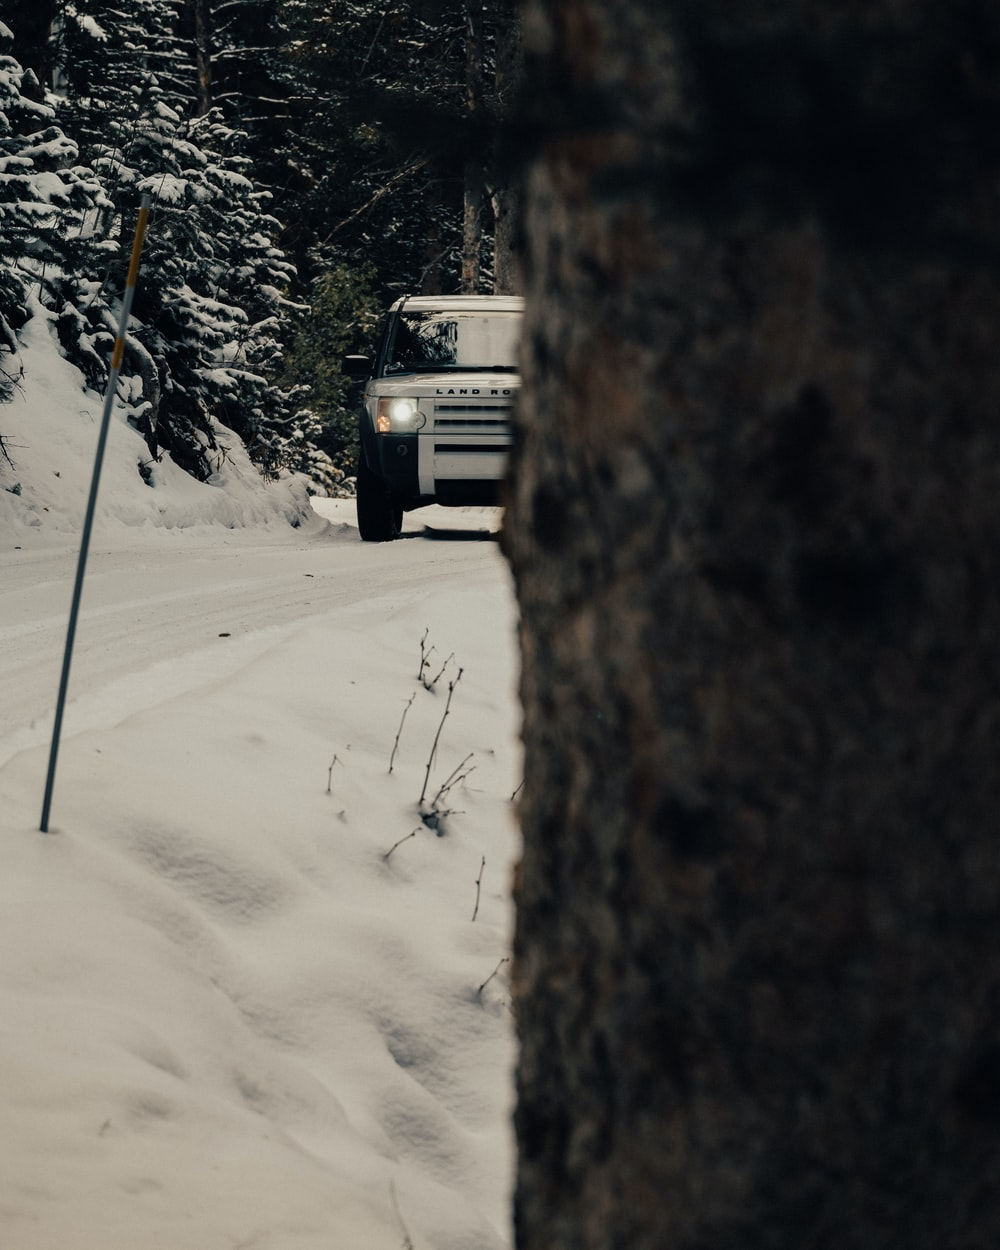 SUV on road covered with snow